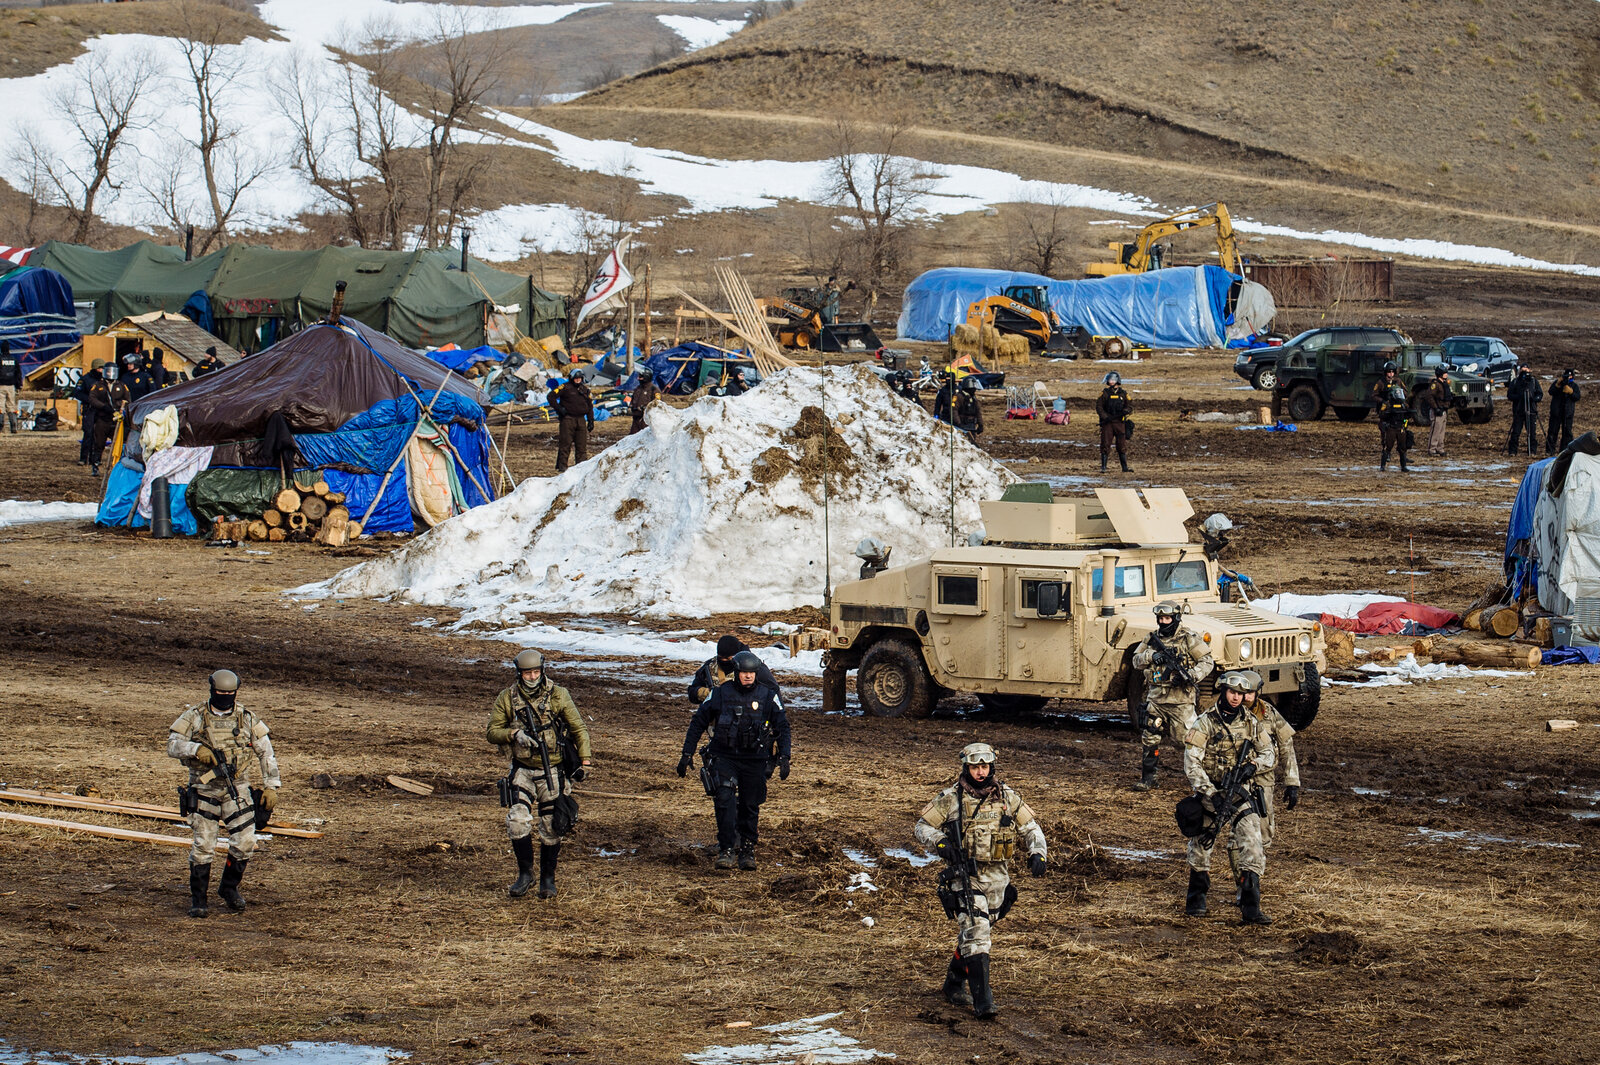 Crude Oil Begins To Flow Through Controversial Dakota Access Pipeline thumbnail